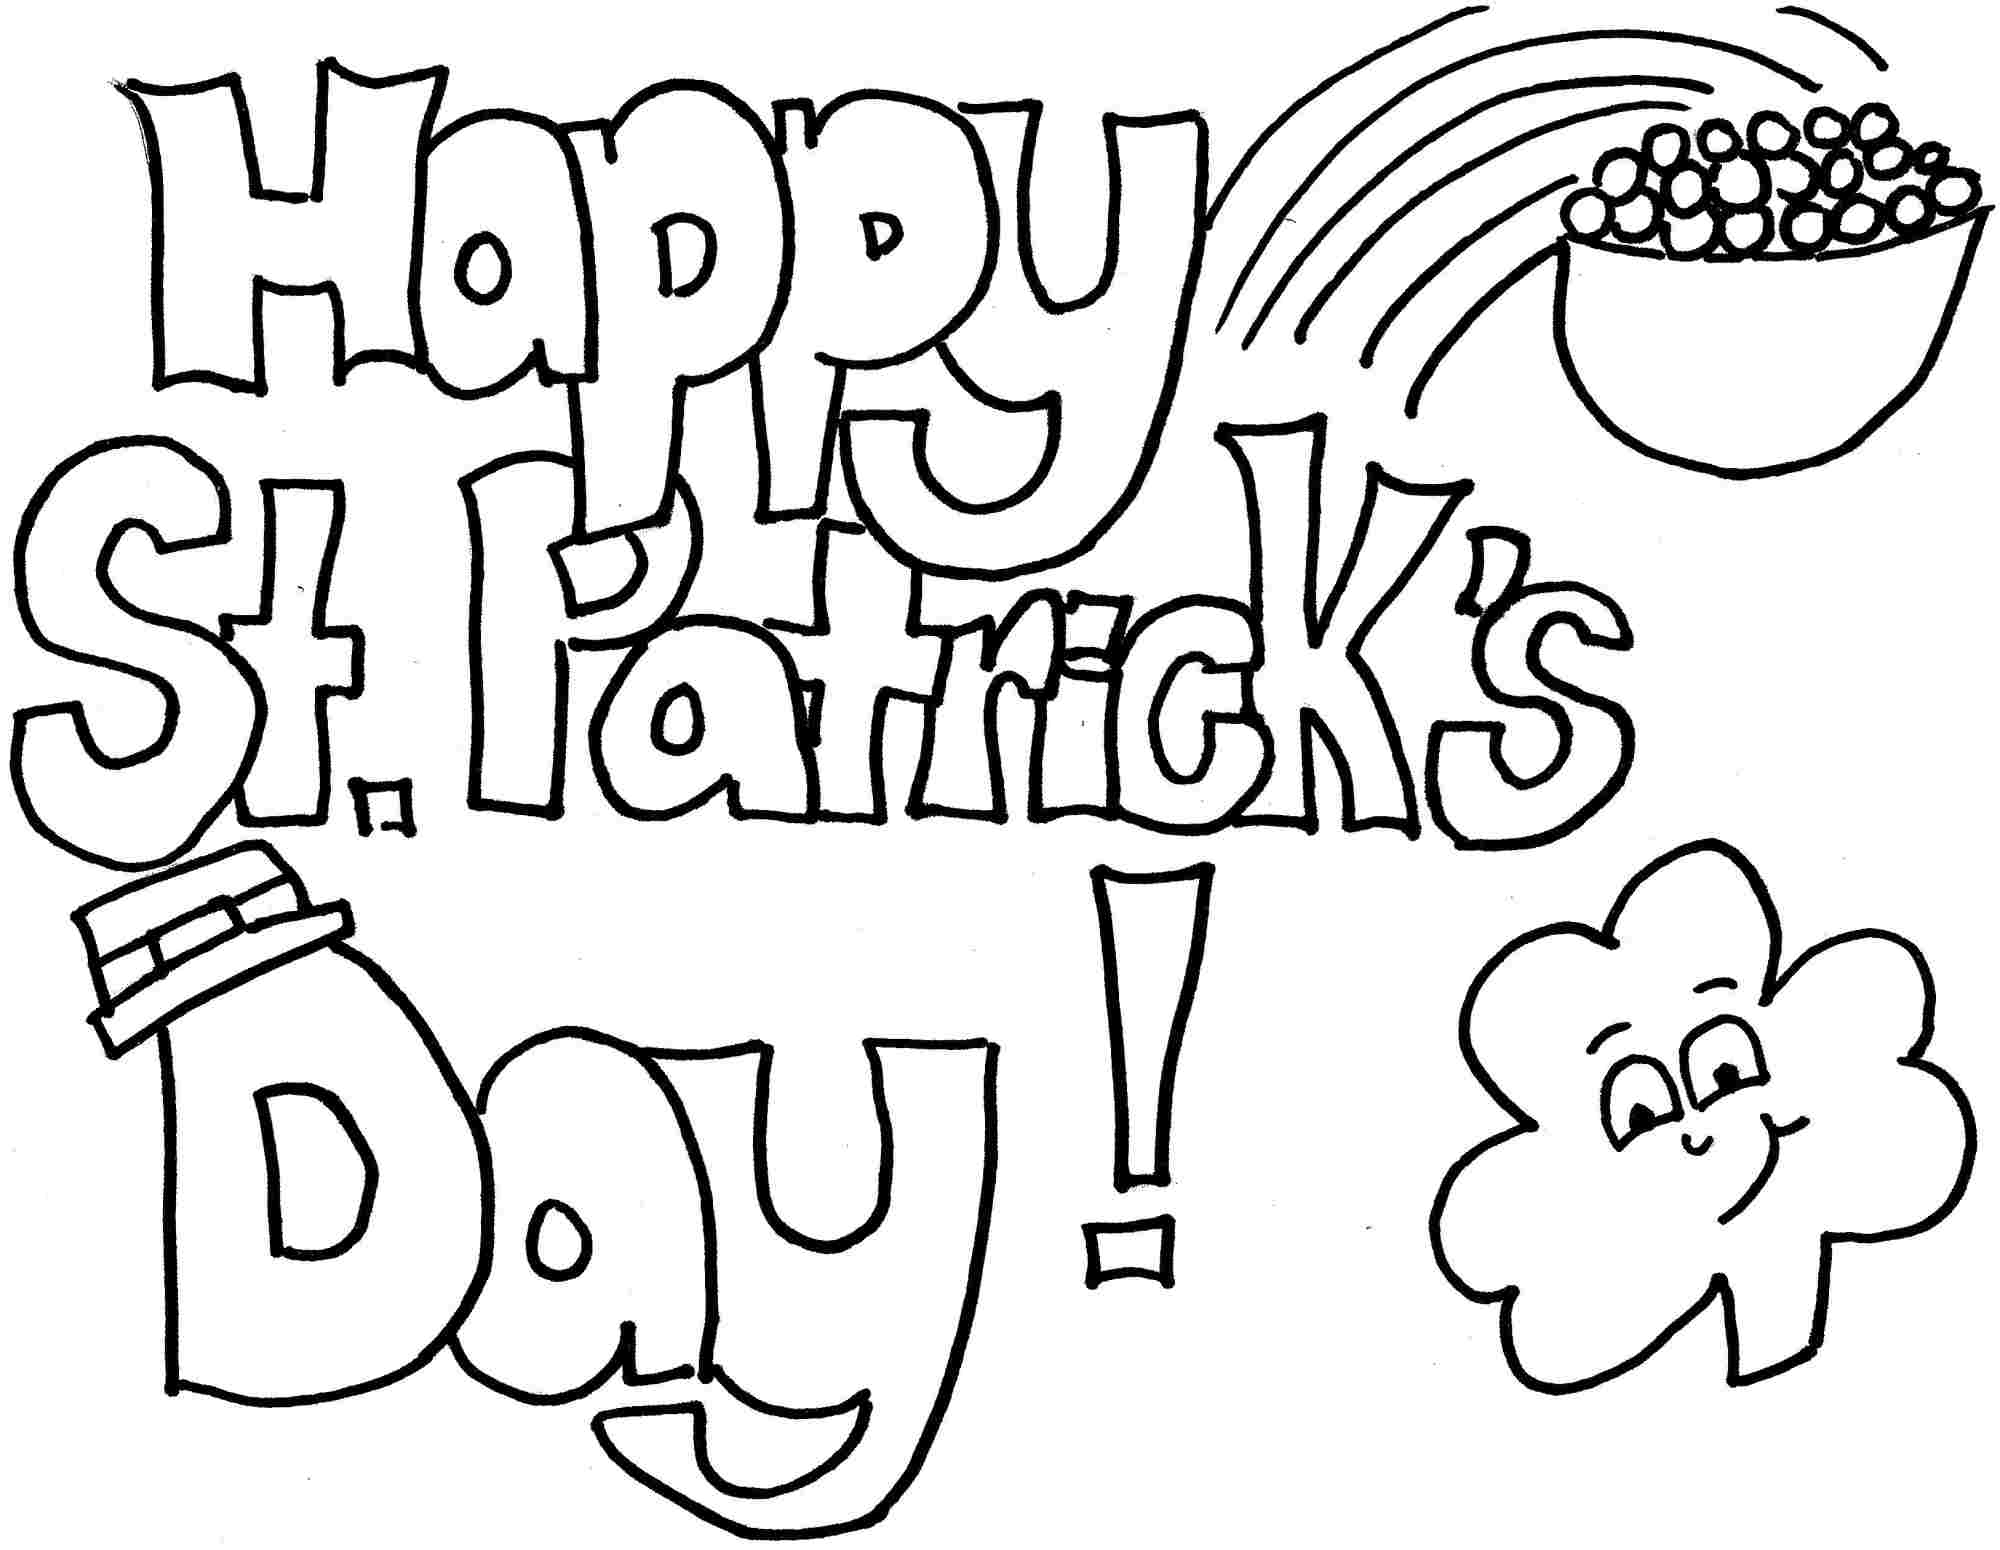 Bon Free St Patricku0027s Day Coloring Pages To Print For Kids. Download, Print And  Color!